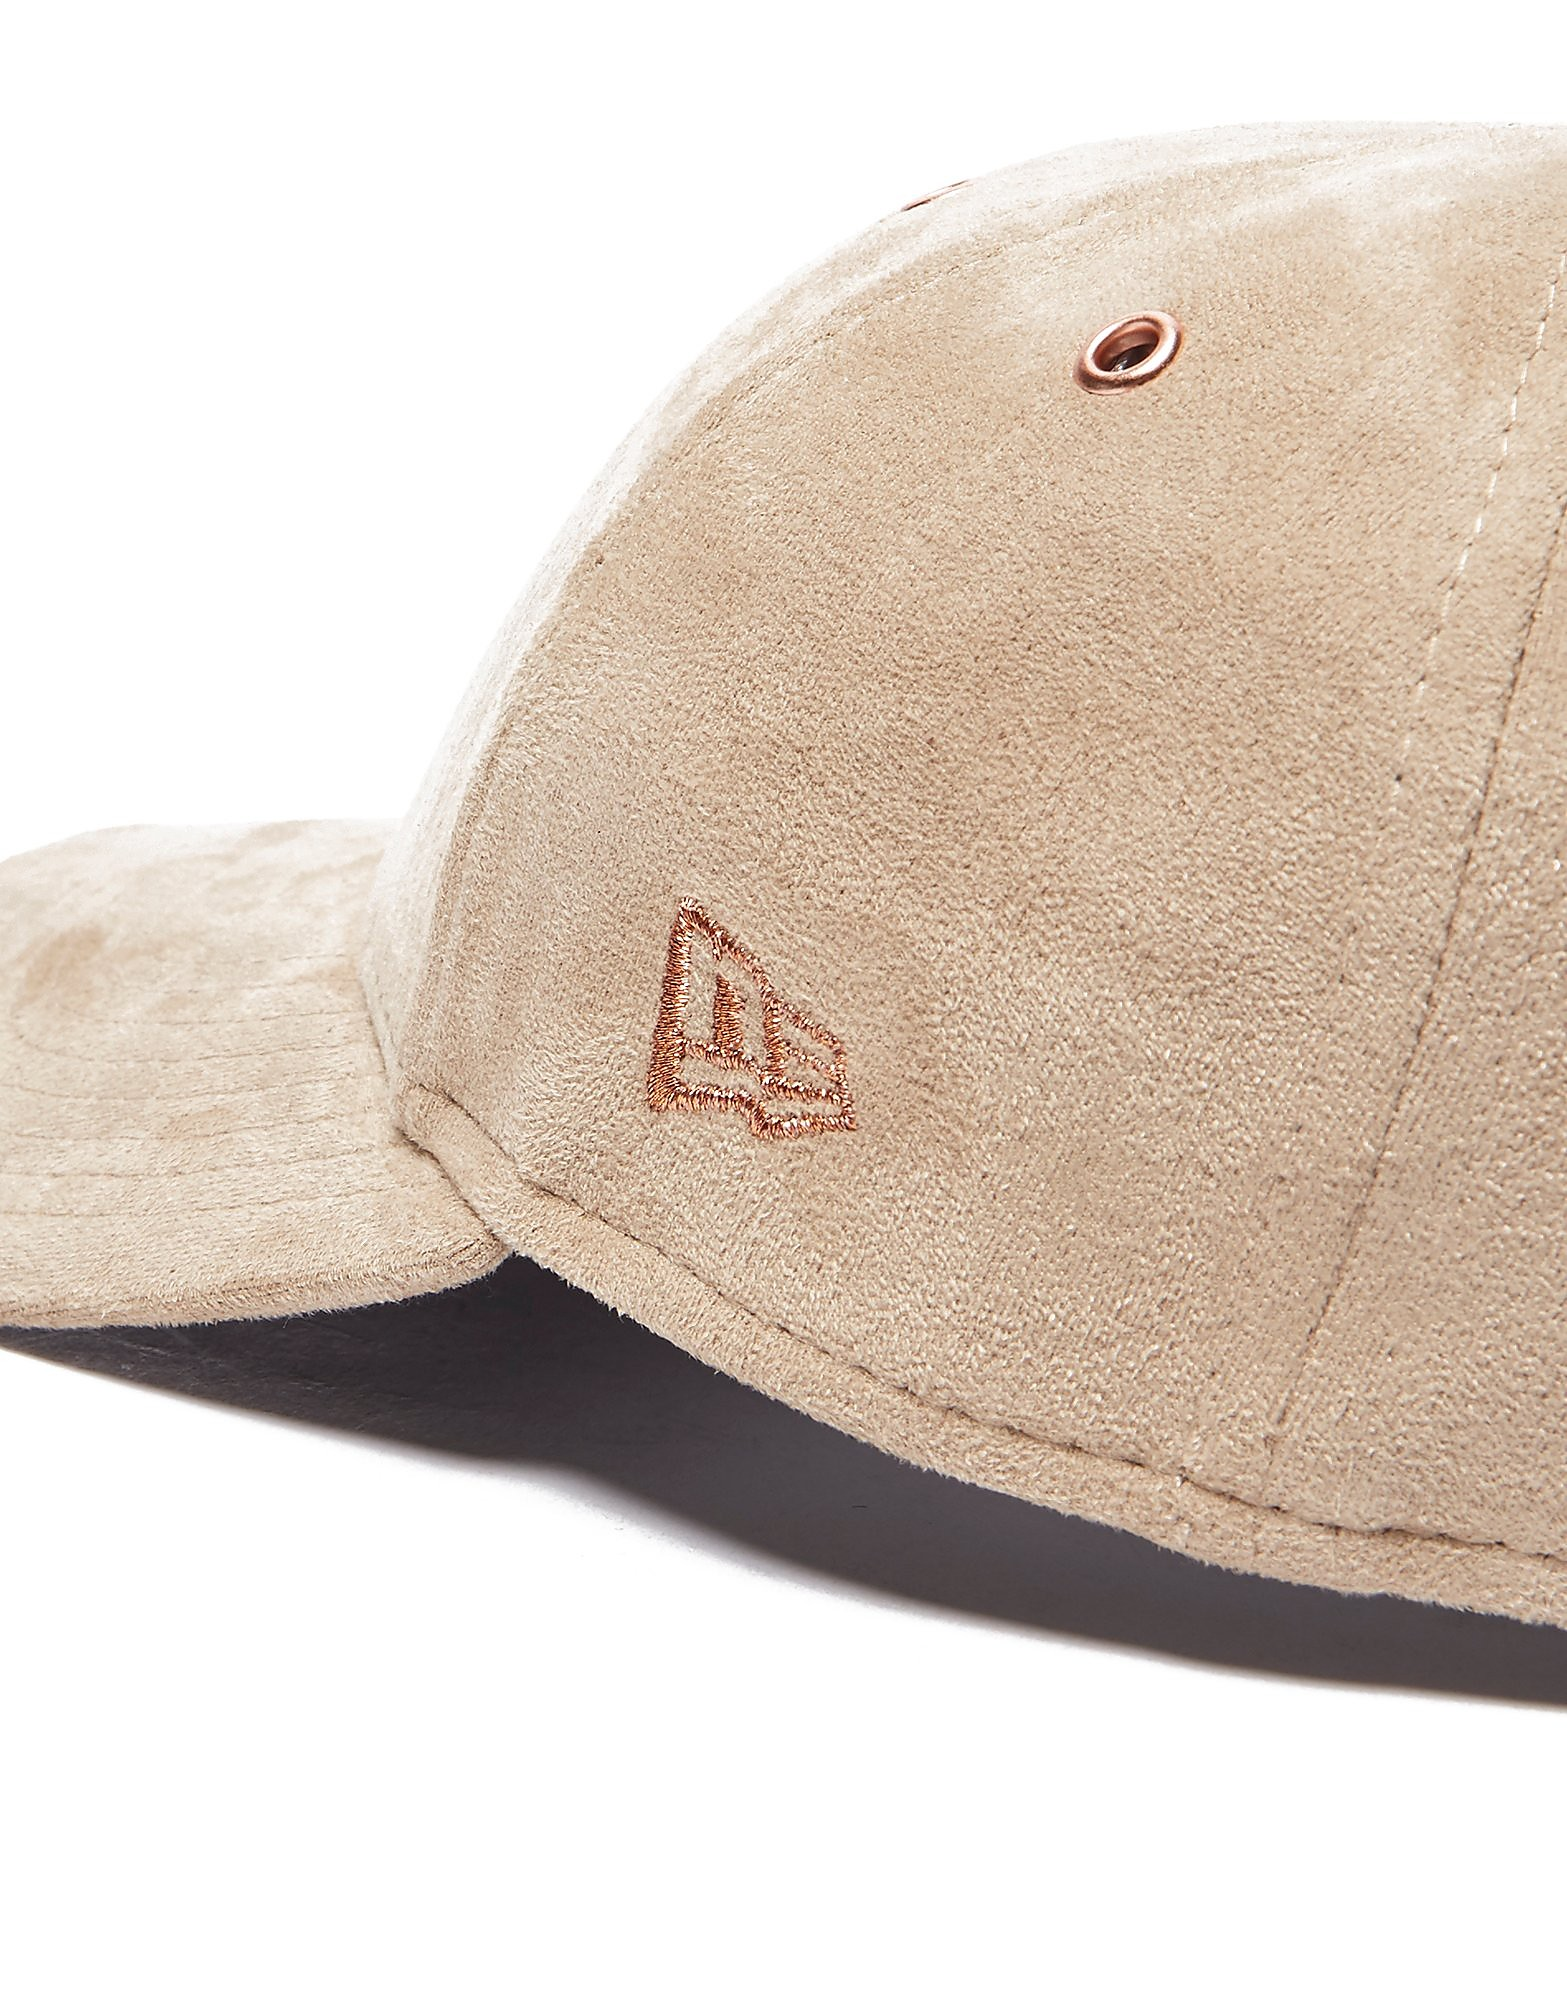 New Era 9FORTY Ruskindskasket